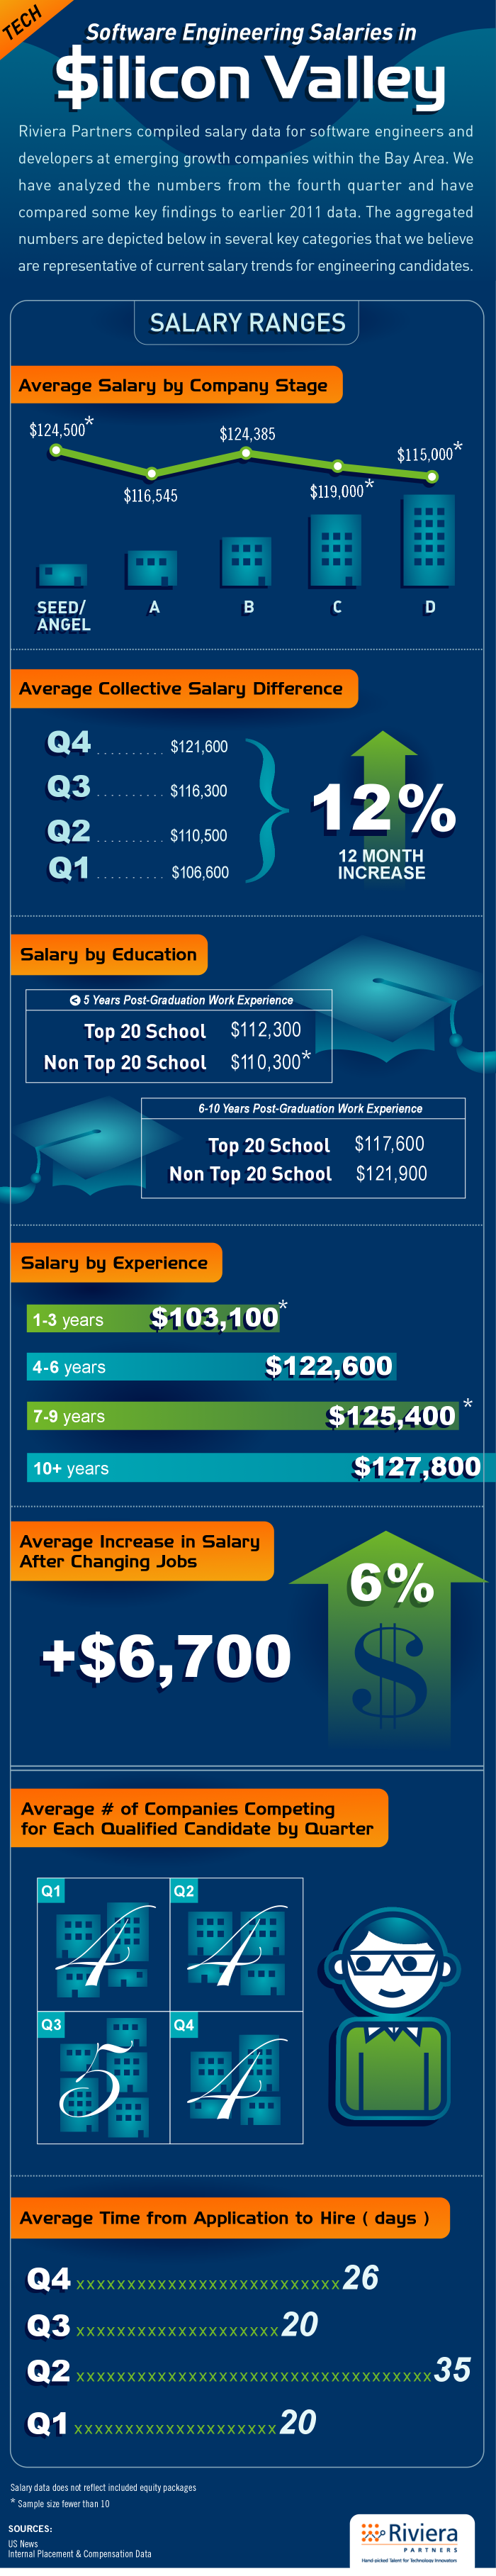 Salary Graphic - 2011 (Q1-Q4)